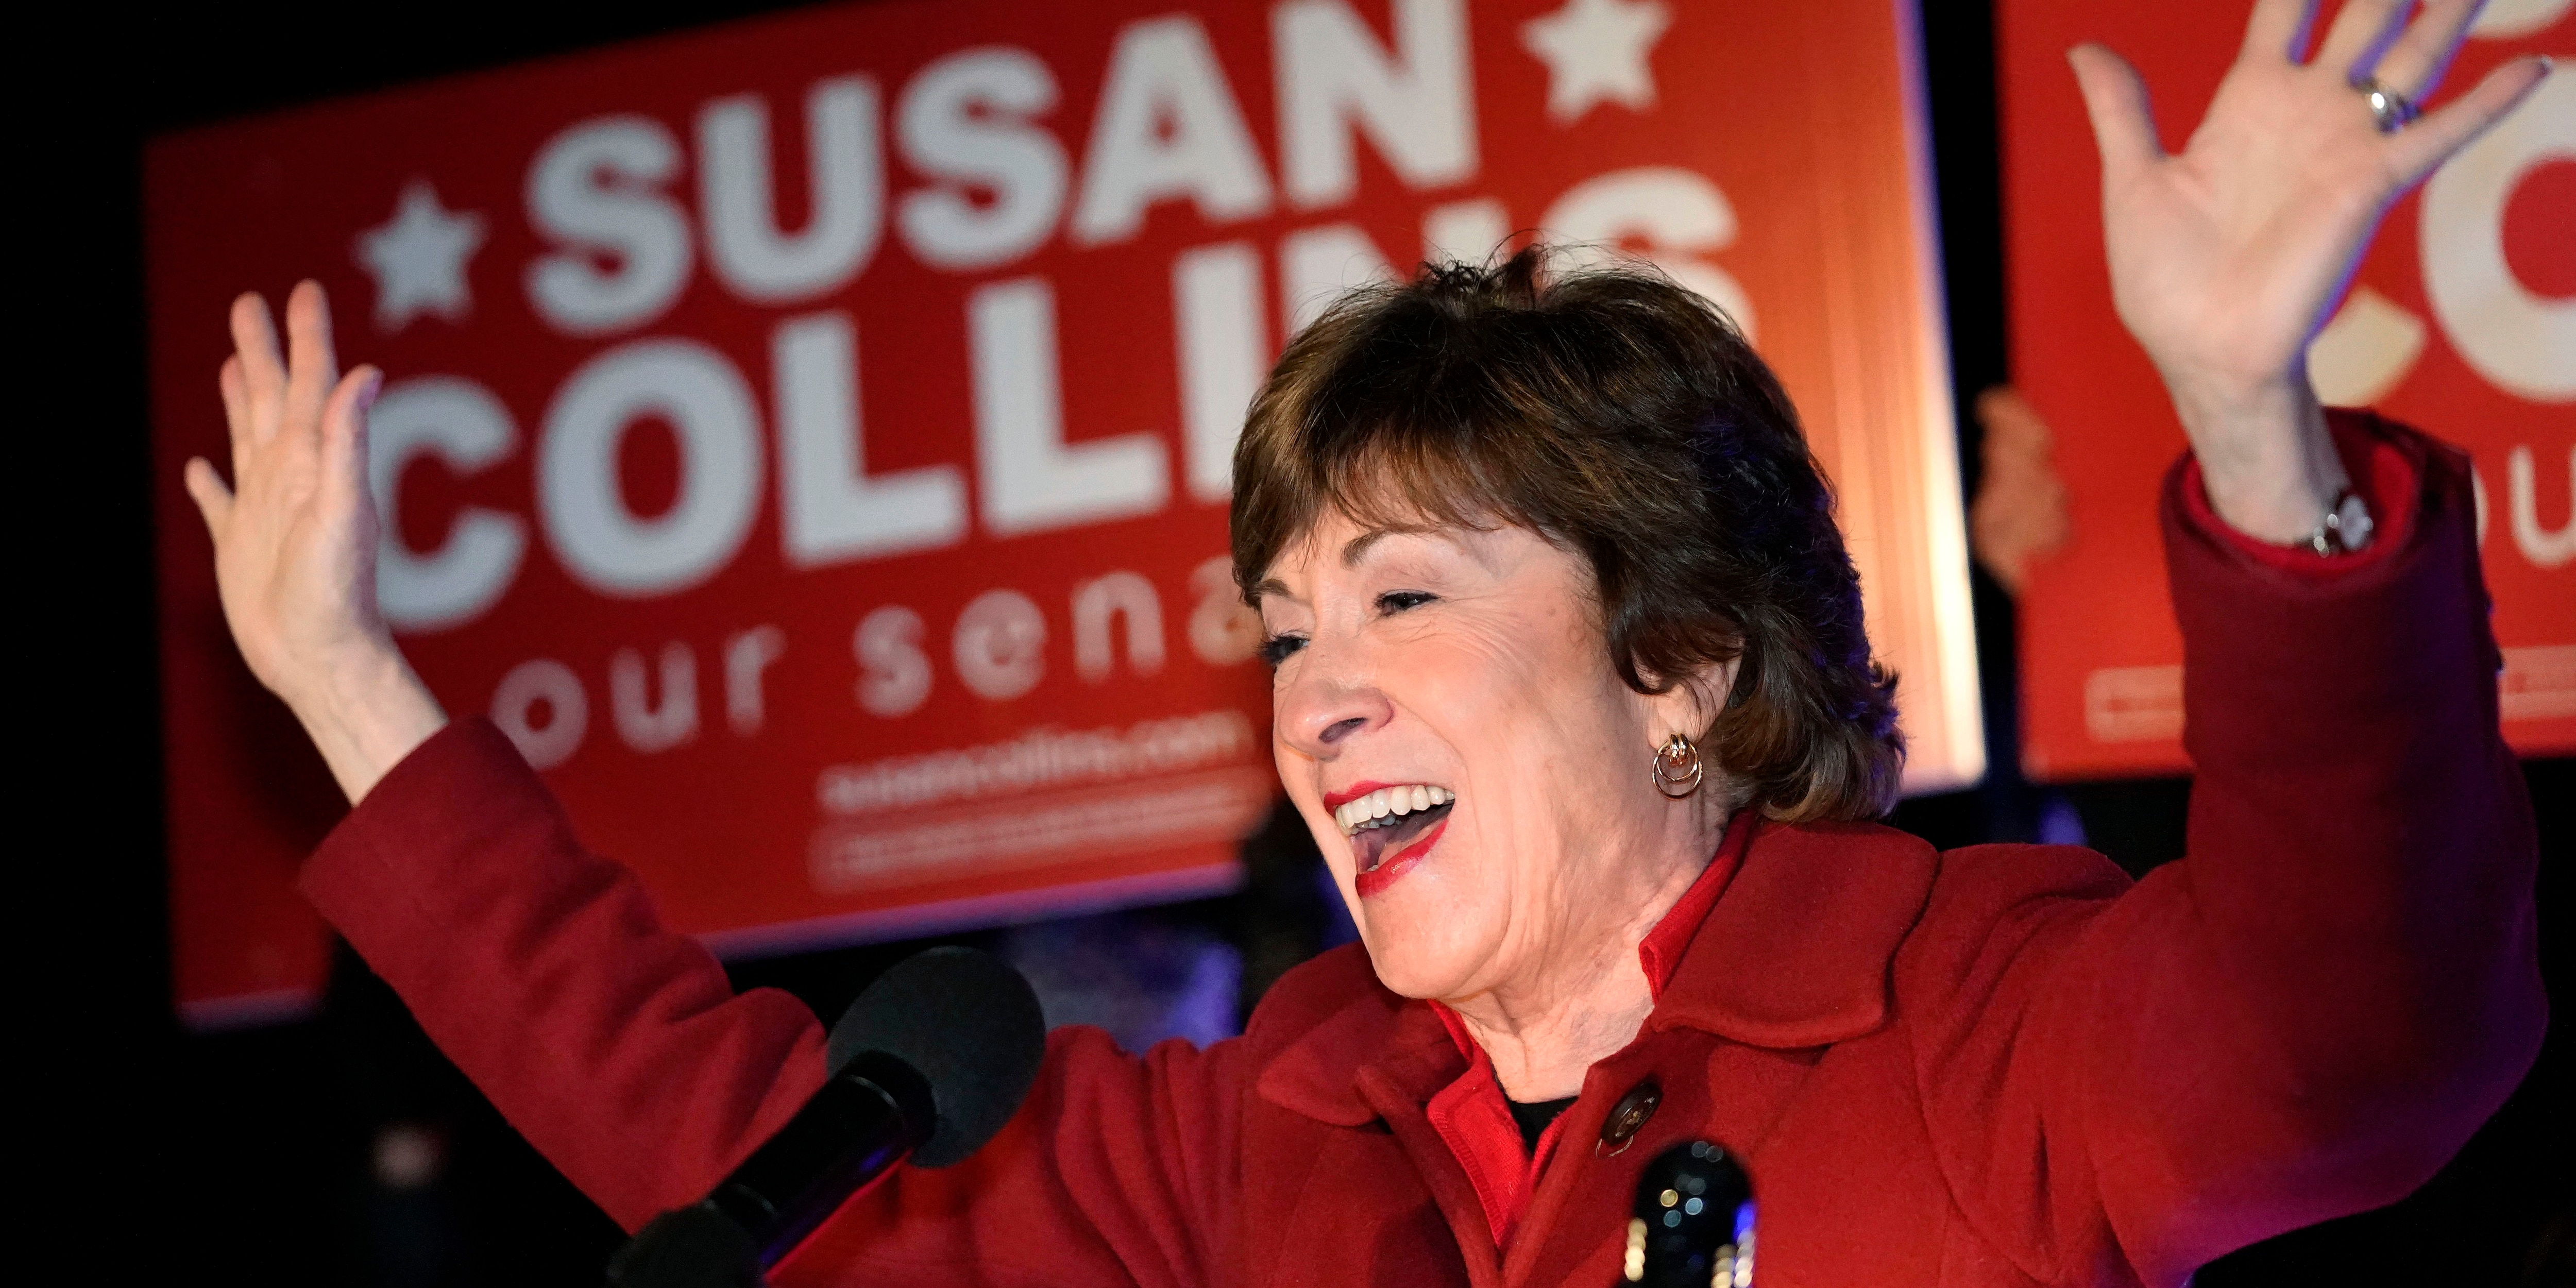 Sen. Susan Collins, R-Maine, addresses supporters just after midnight on Wednesday, Nov. 4, 2020, in Bangor, Maine. (Associated Press)